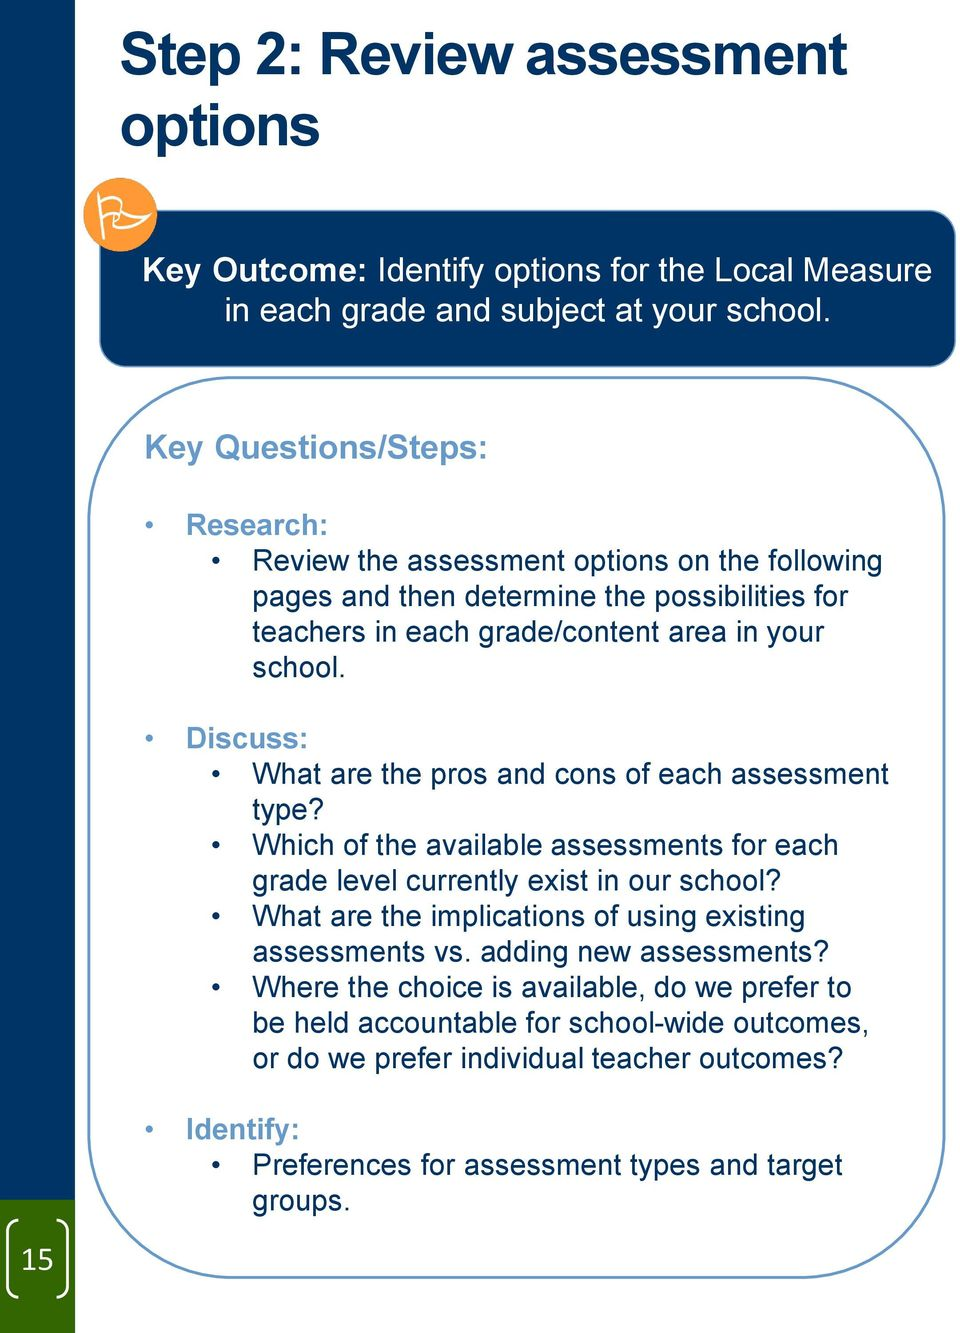 Discuss: What are the pros and cons of each assessment type? Which of the available assessments for each grade level currently exist in our school?